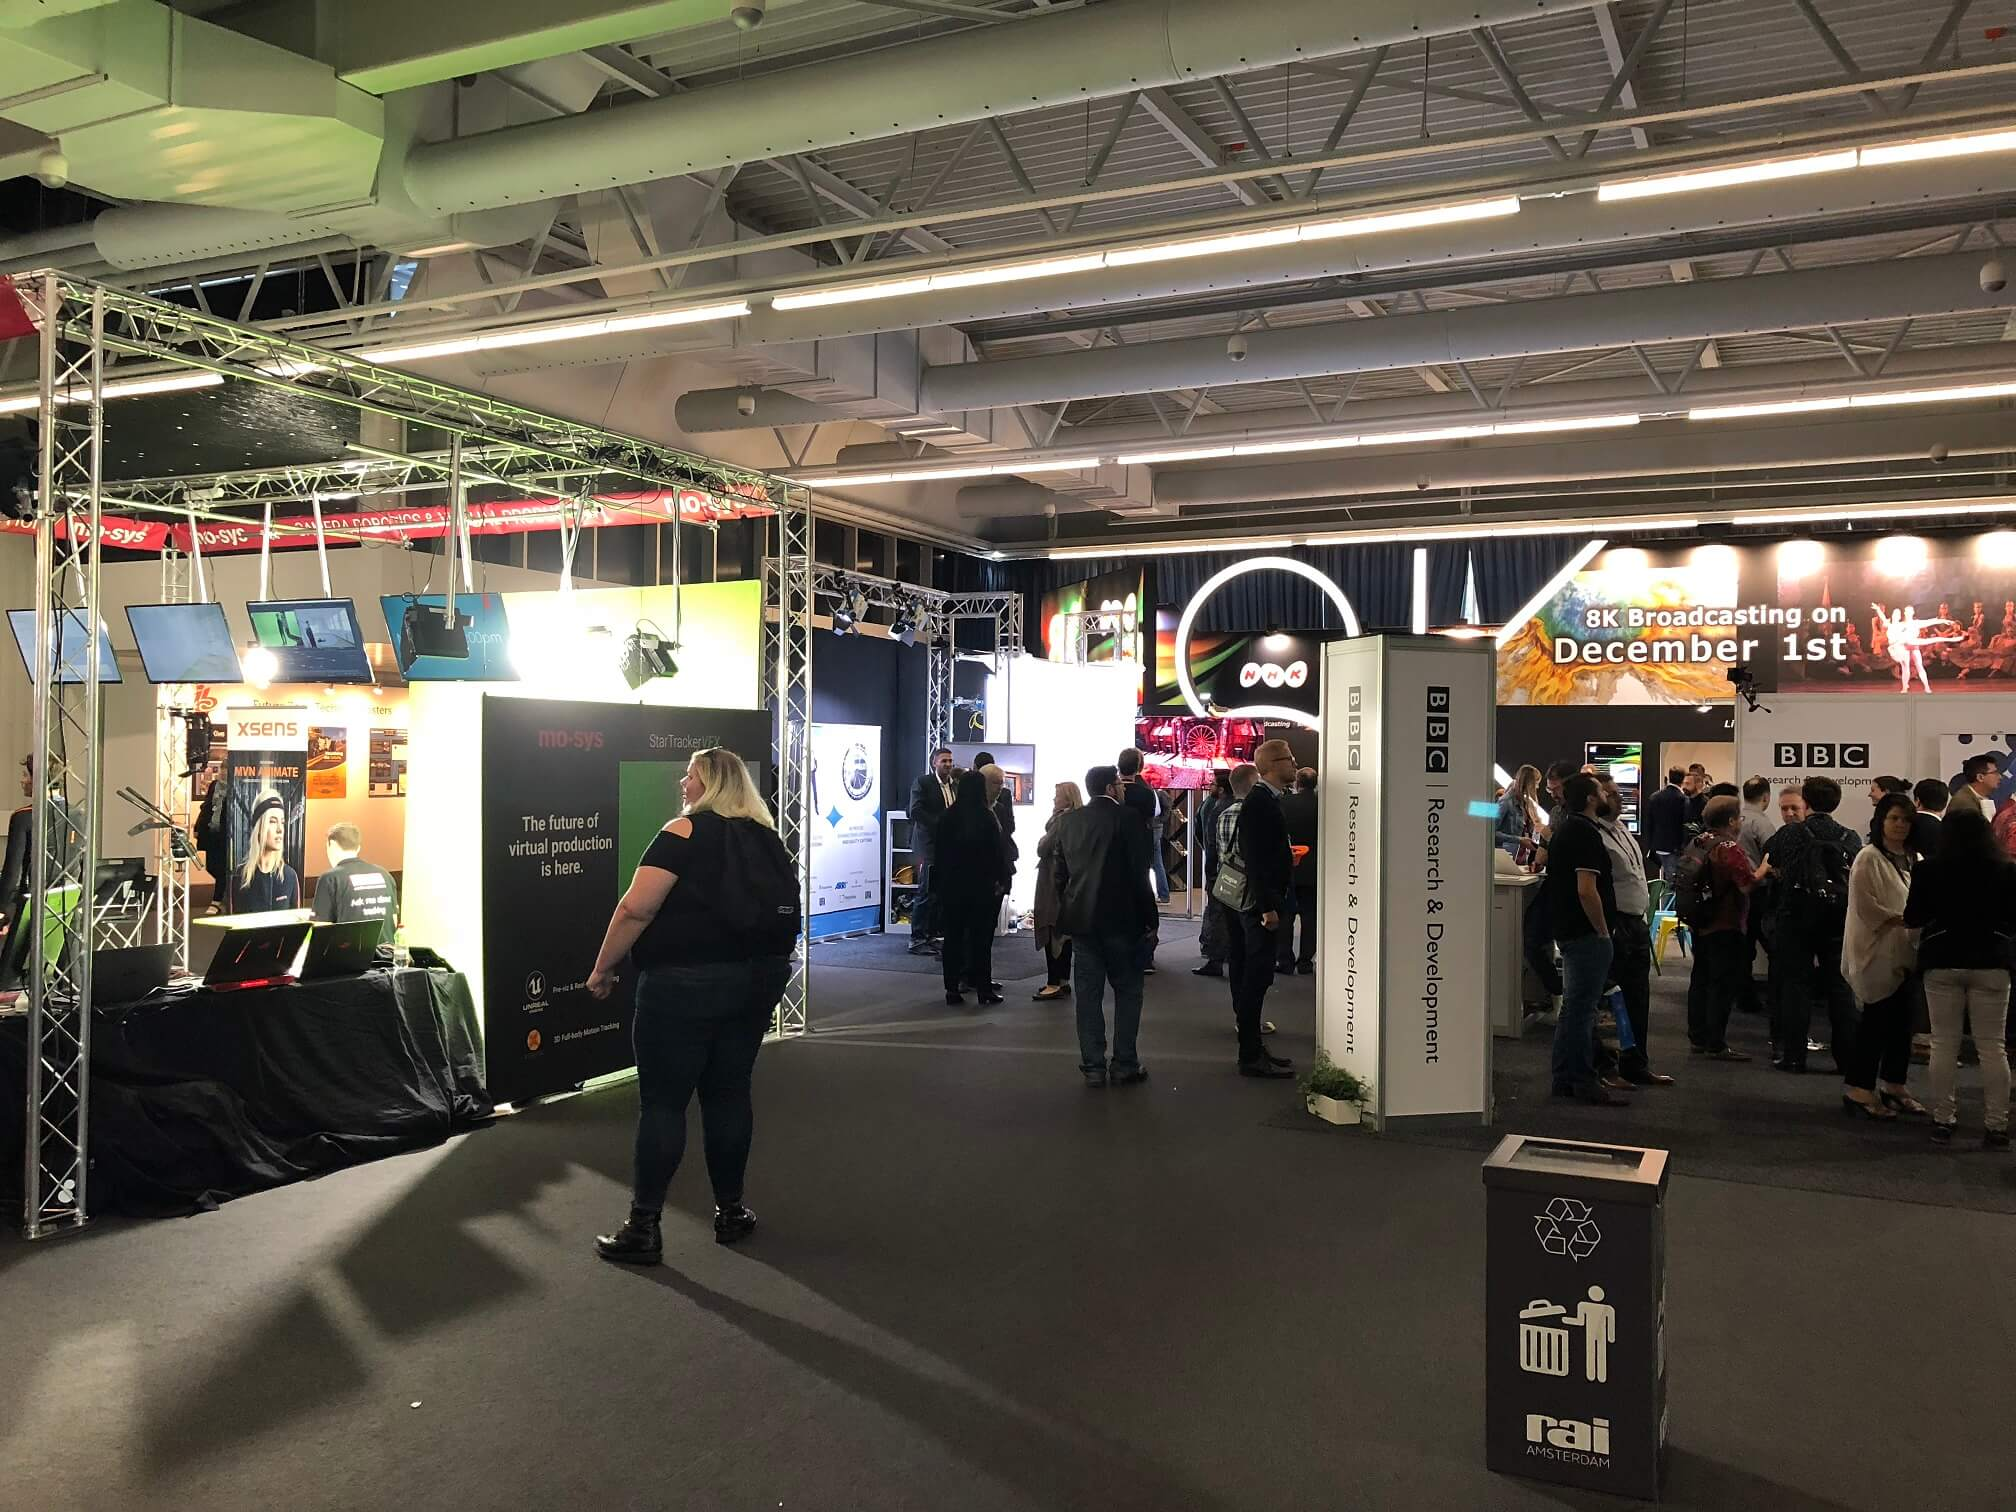 Liberty at IBC2018 – Day Four: From Sesame Street to Amsterdam